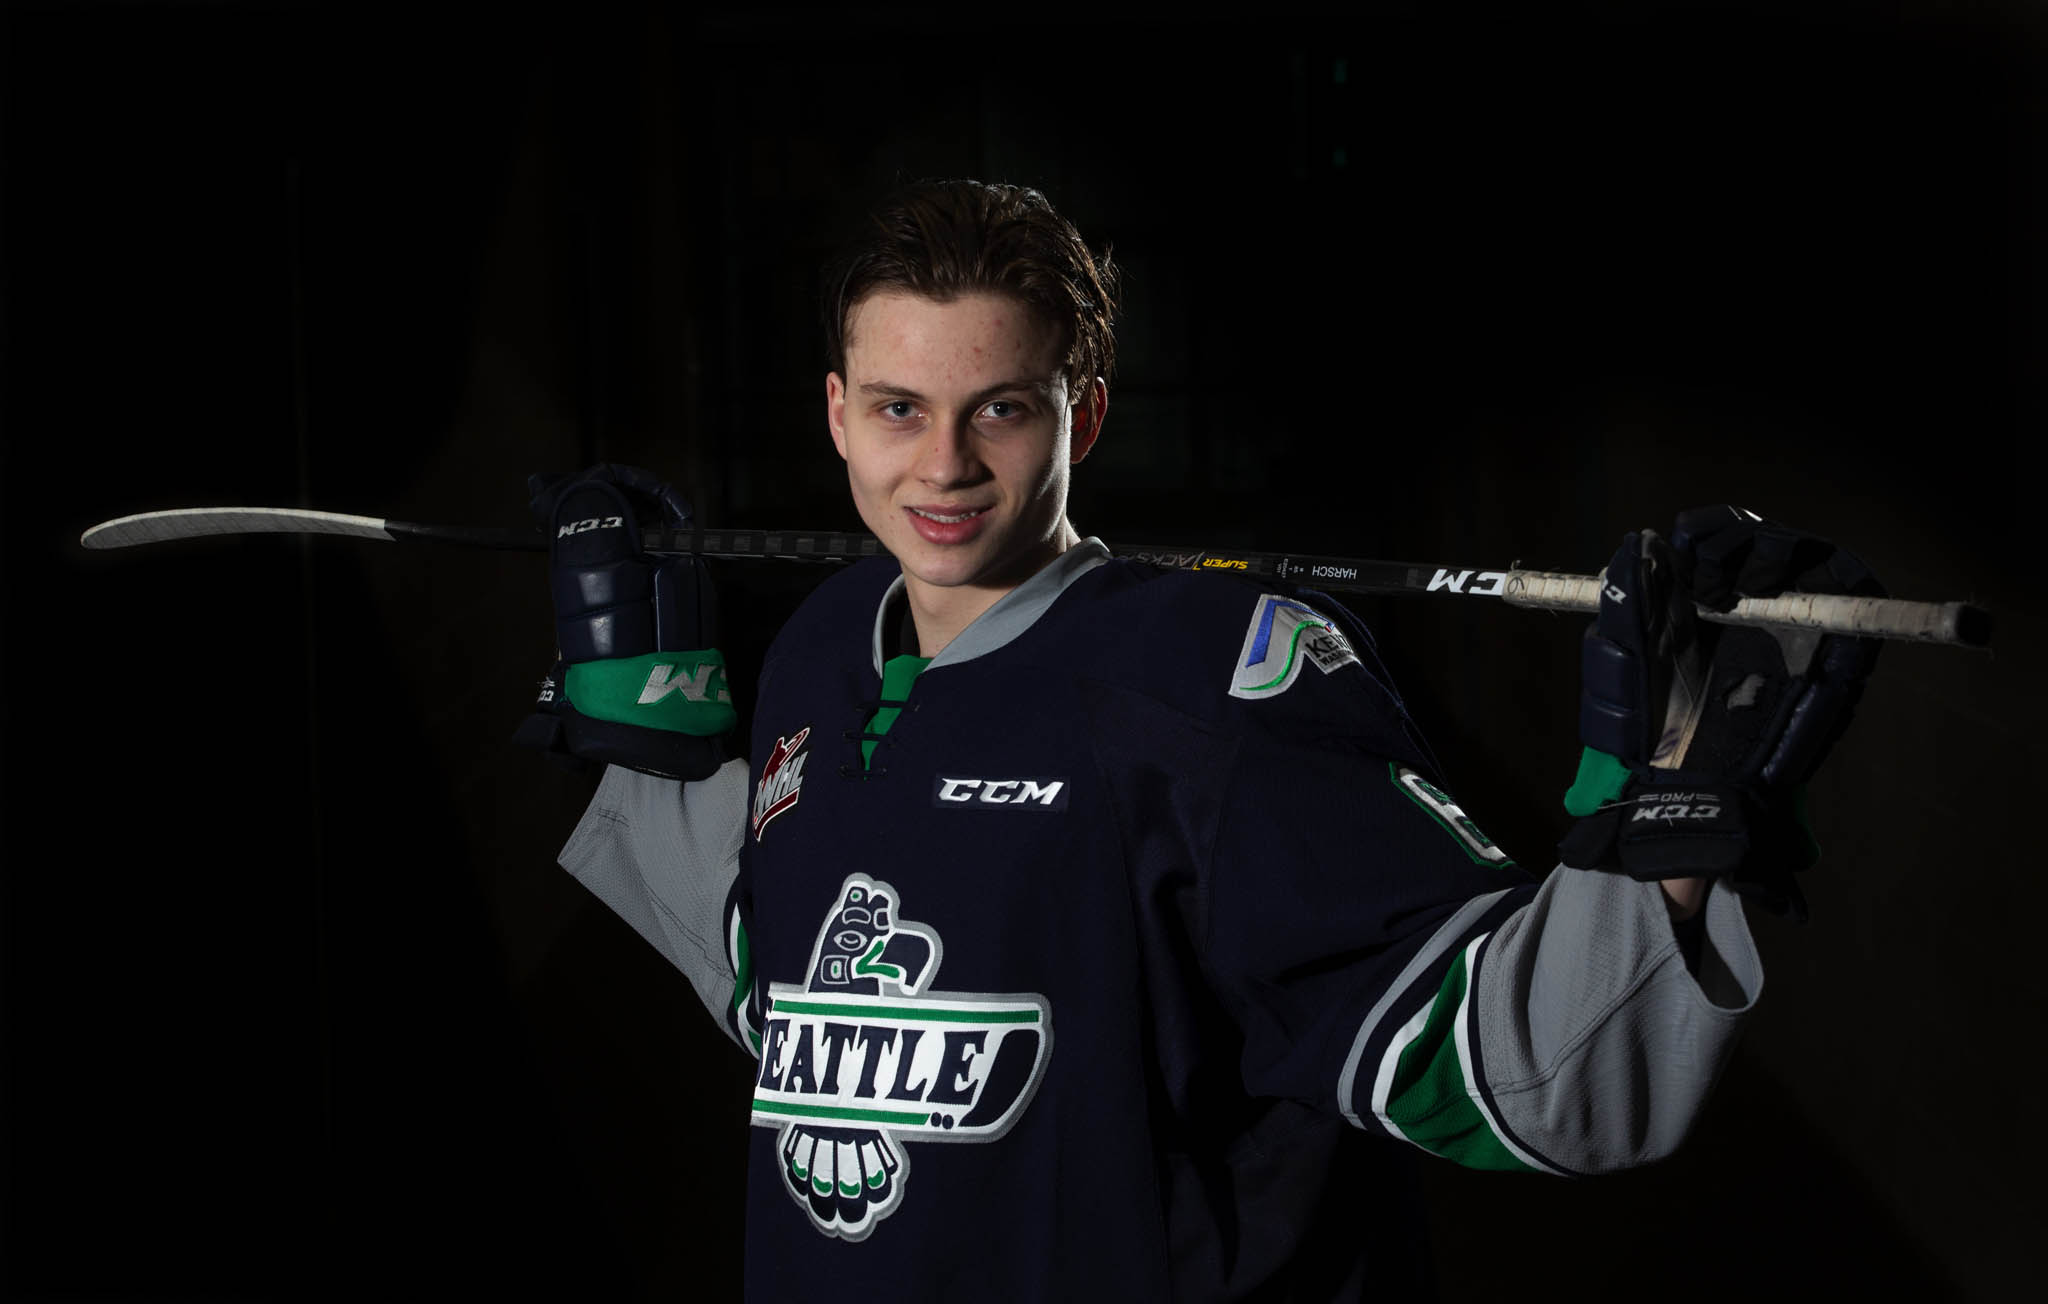 The Jets wrapped up the day by selecting Tyrel Bauer in the sixth round, 164th overall. The 18-year-old blue-liner from Alberta served as an alternate captain of the Seattle Thunderbirds of the Western Hockey League last season.